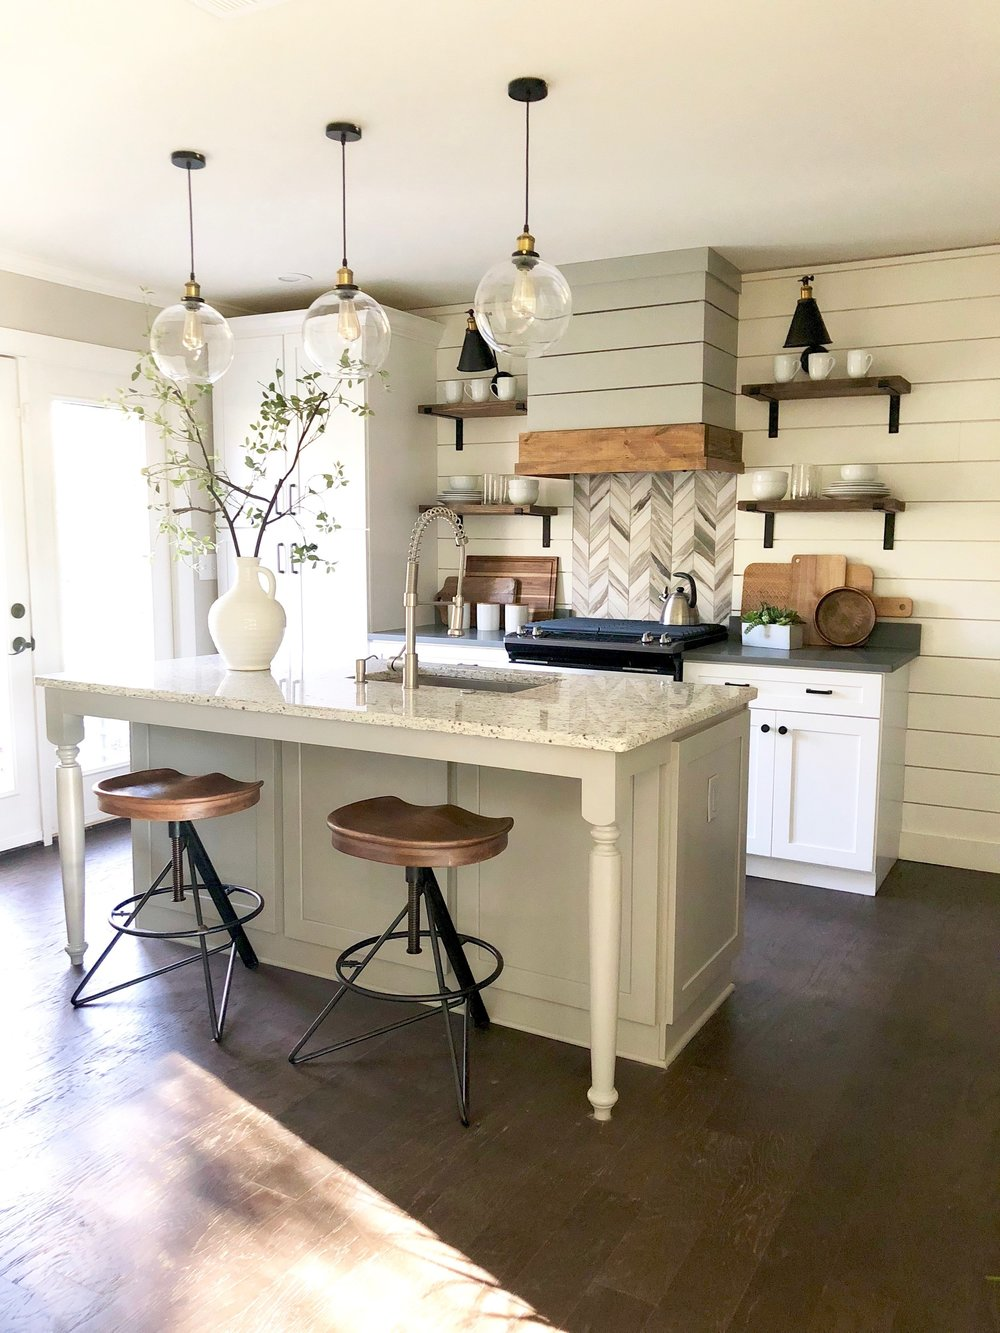 My favorite transformation on this project by far was the kitchen.  Kitchens and baths sell homes more than any other rooms, and in this home, I knew wanted the kitchen to be the shining star!